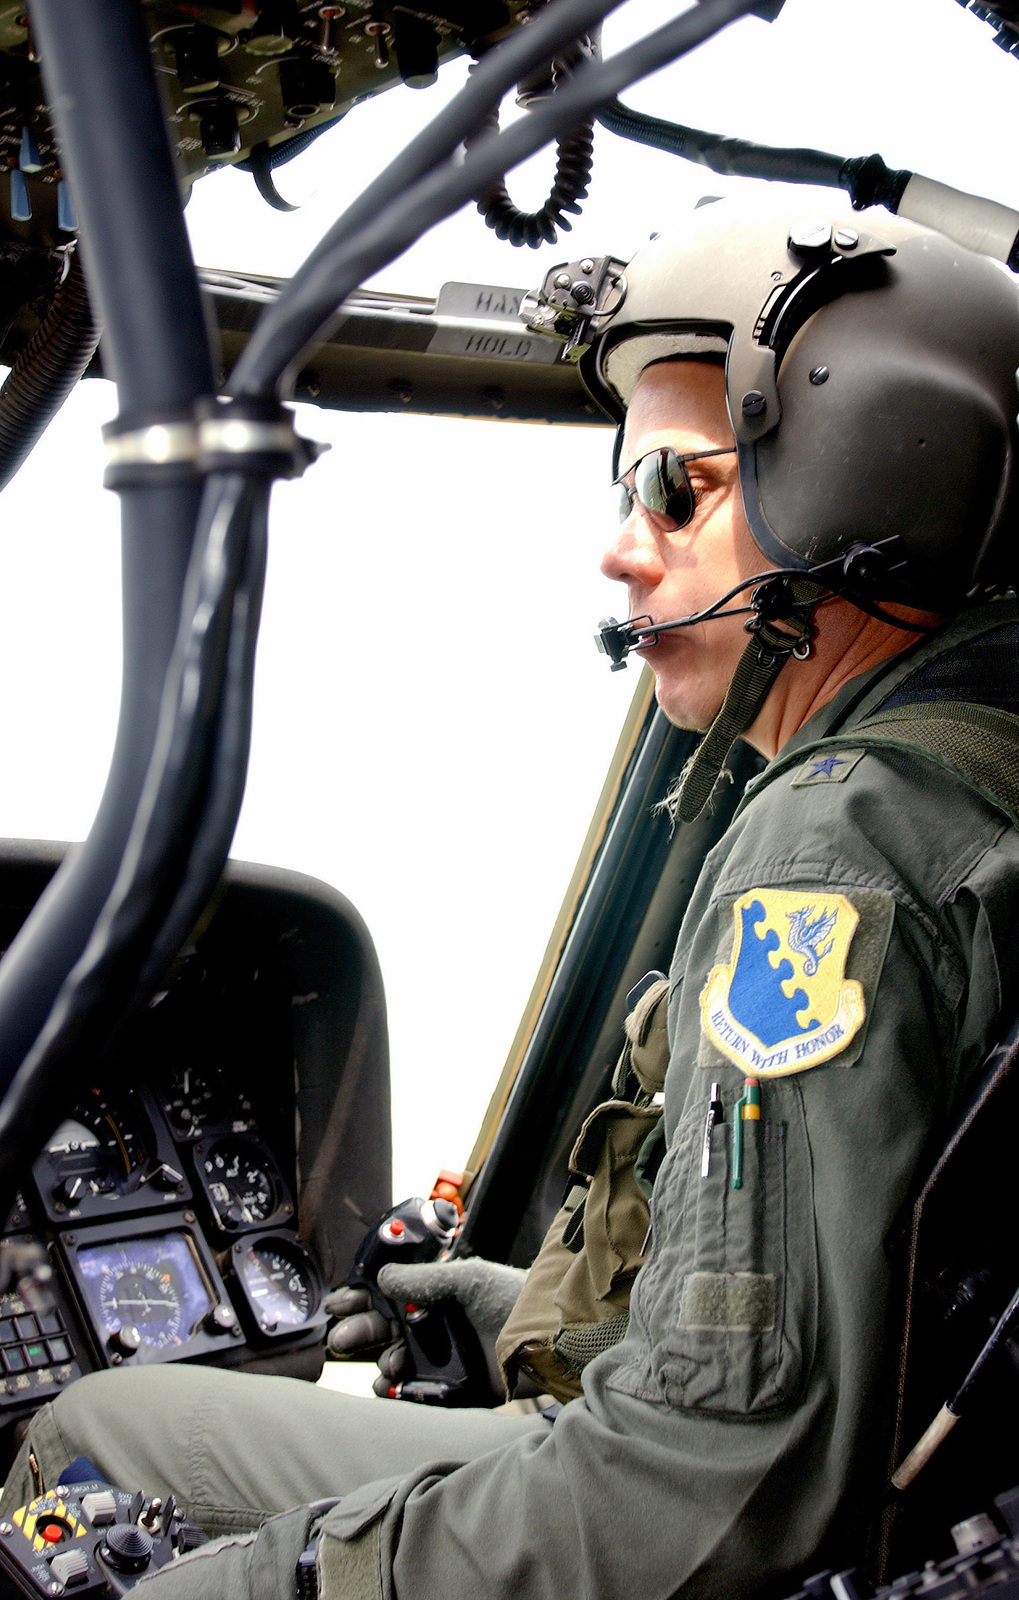 US Air Force (USAF) Brigadier General (BGEN) Don Hoffman, Commander, 31st Fighter Wing (FW), pilots a US Army (USA) UH-60 Black Hawk helicopter during an incentive flight conducted from Aviano Air Base (AB), Italy